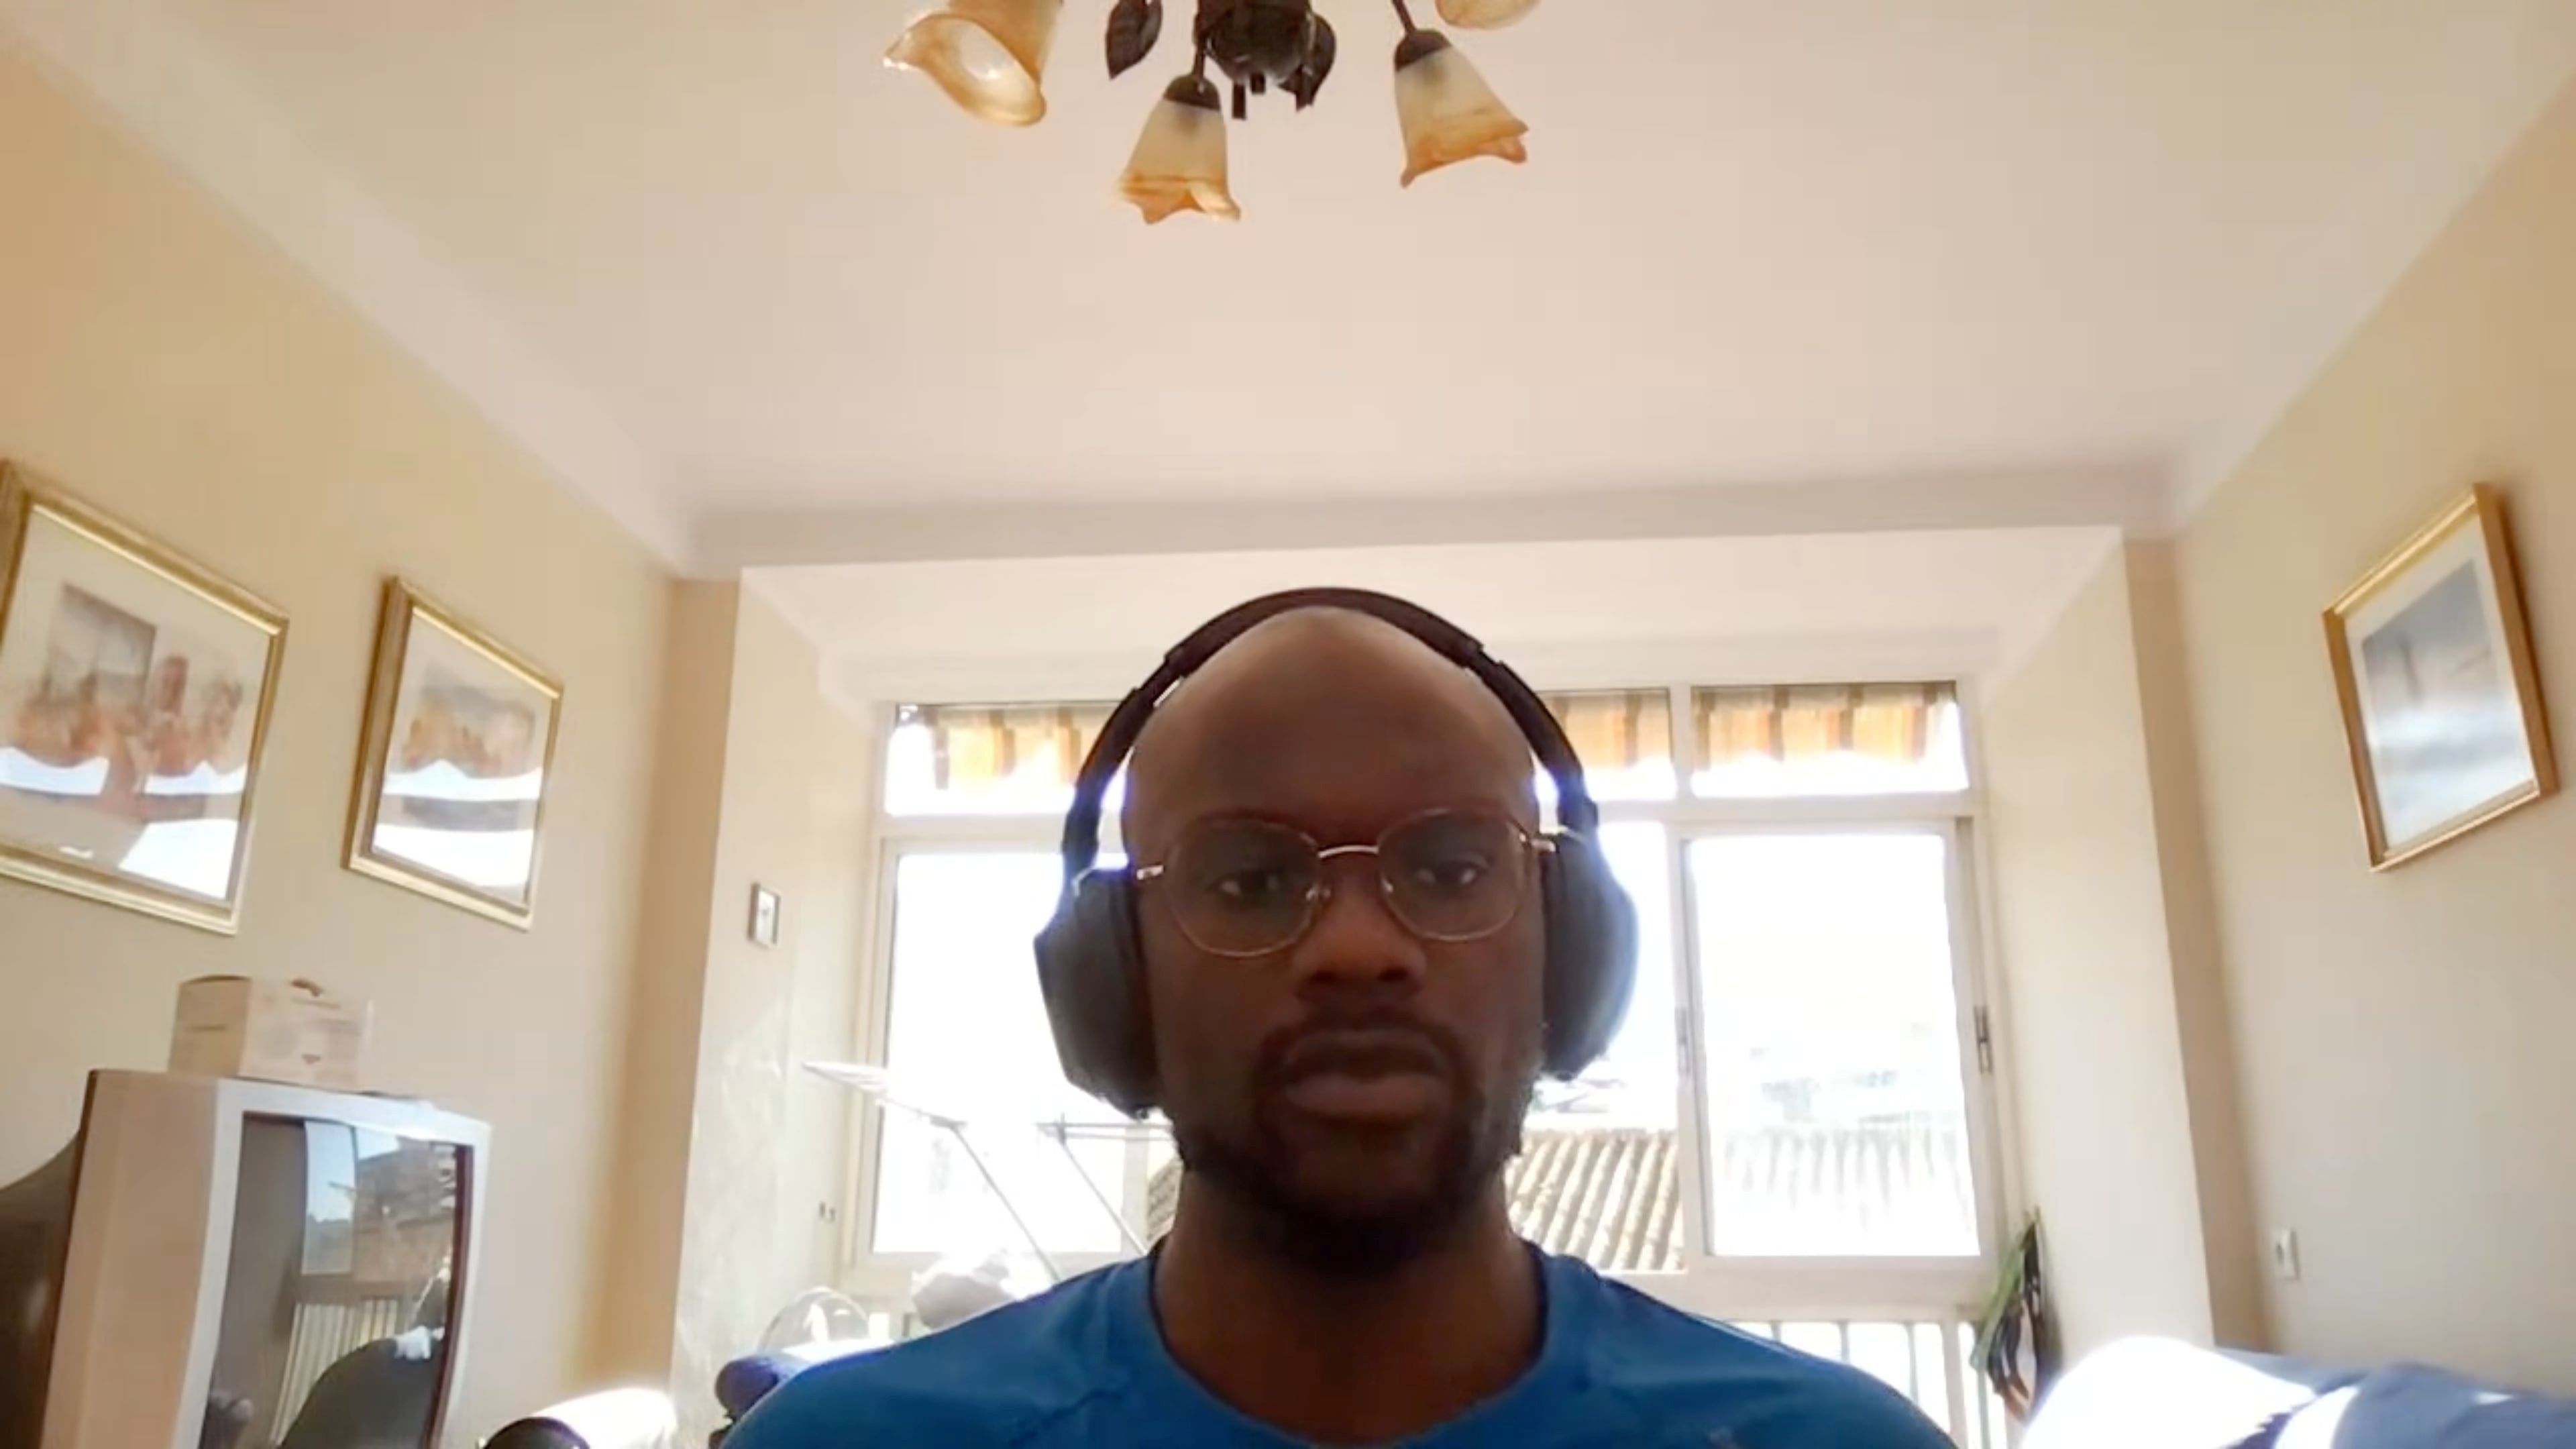 A screengrab dated June 2, 2021 shows a user during a Google Meet video call appearing brighter because of an upcoming light adjustments feature that uses artificial intelligence. Google/Handout via REUTERS